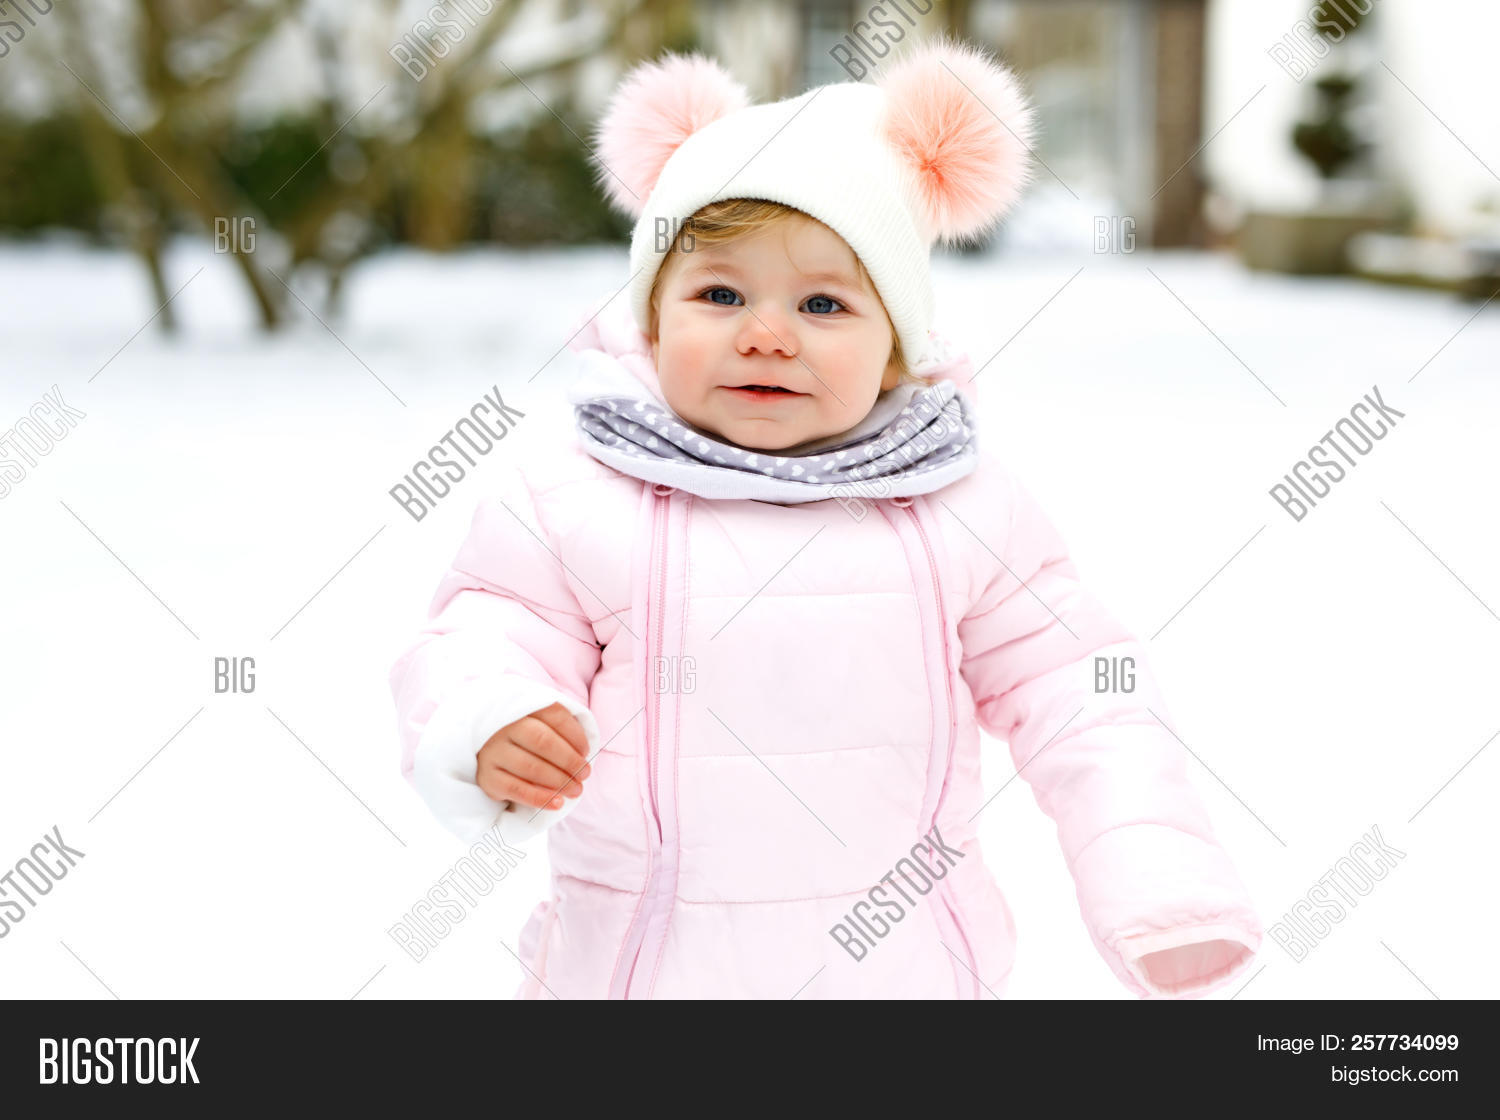 5570188e9 Adorable Little Baby Image   Photo (Free Trial)